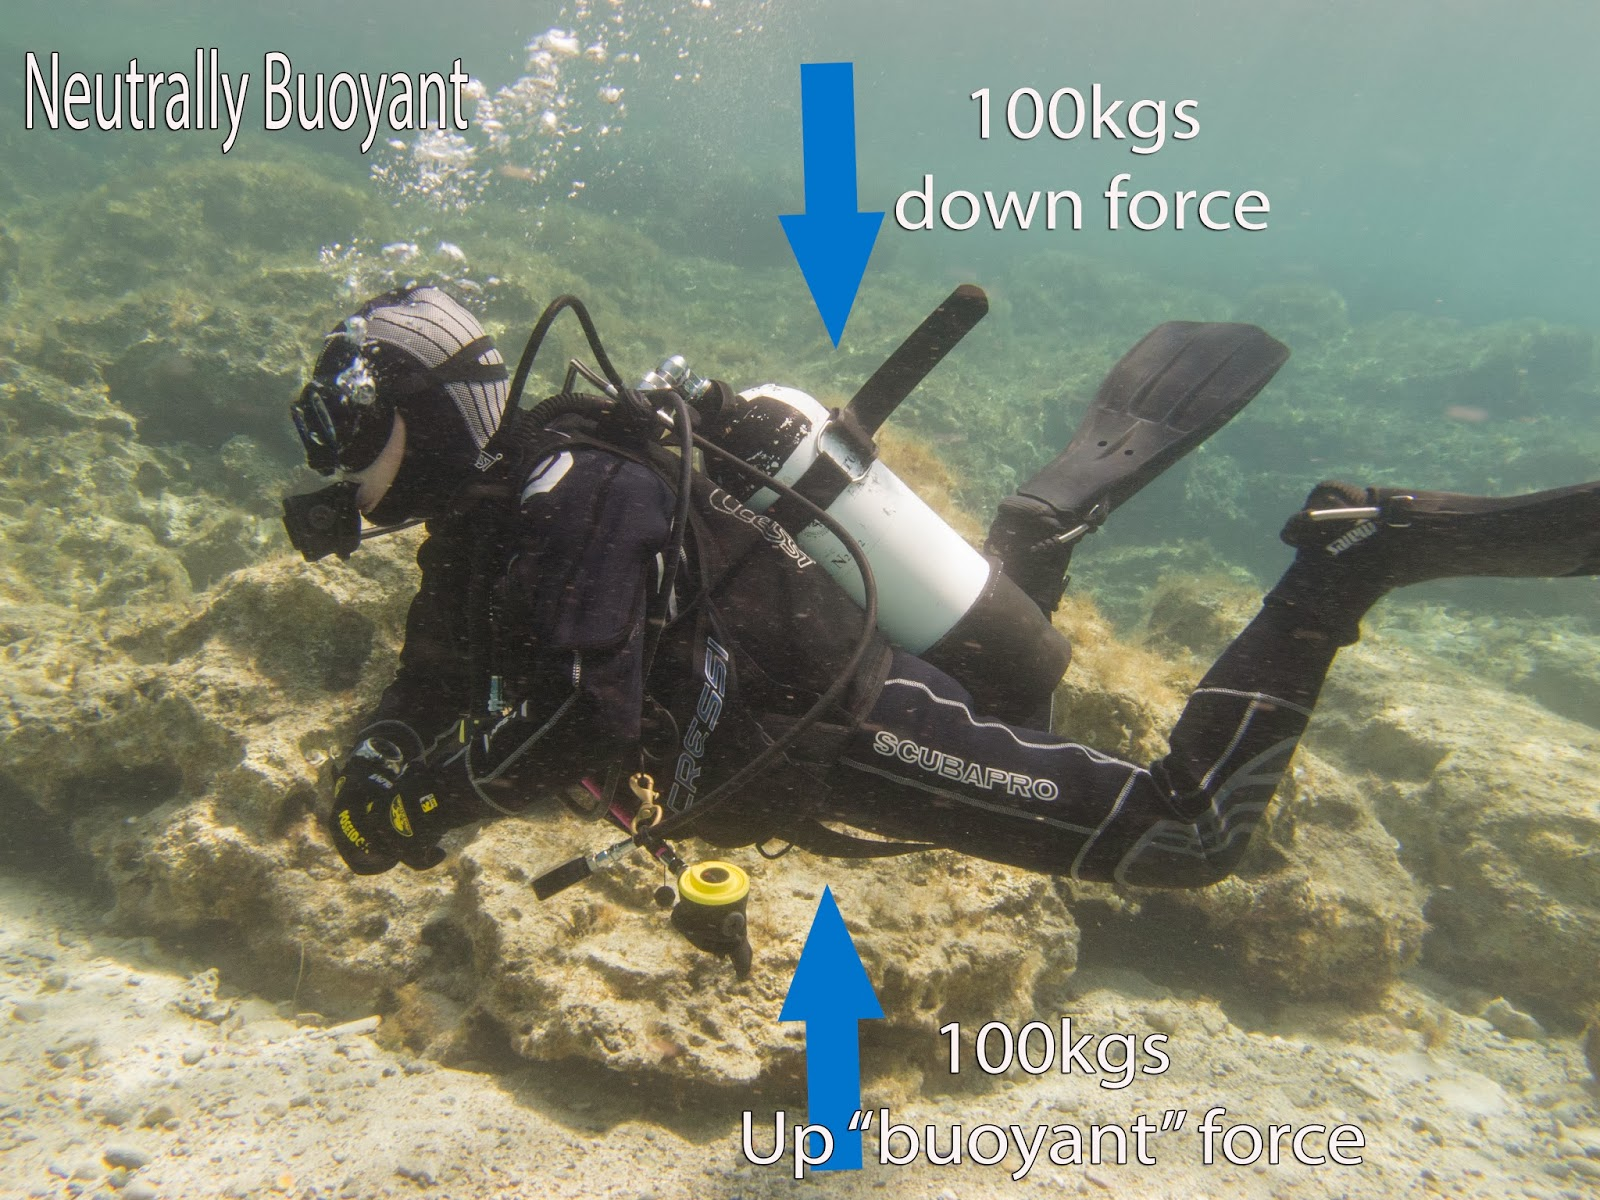 Water Buoyancy, Cohesion & Adhesion